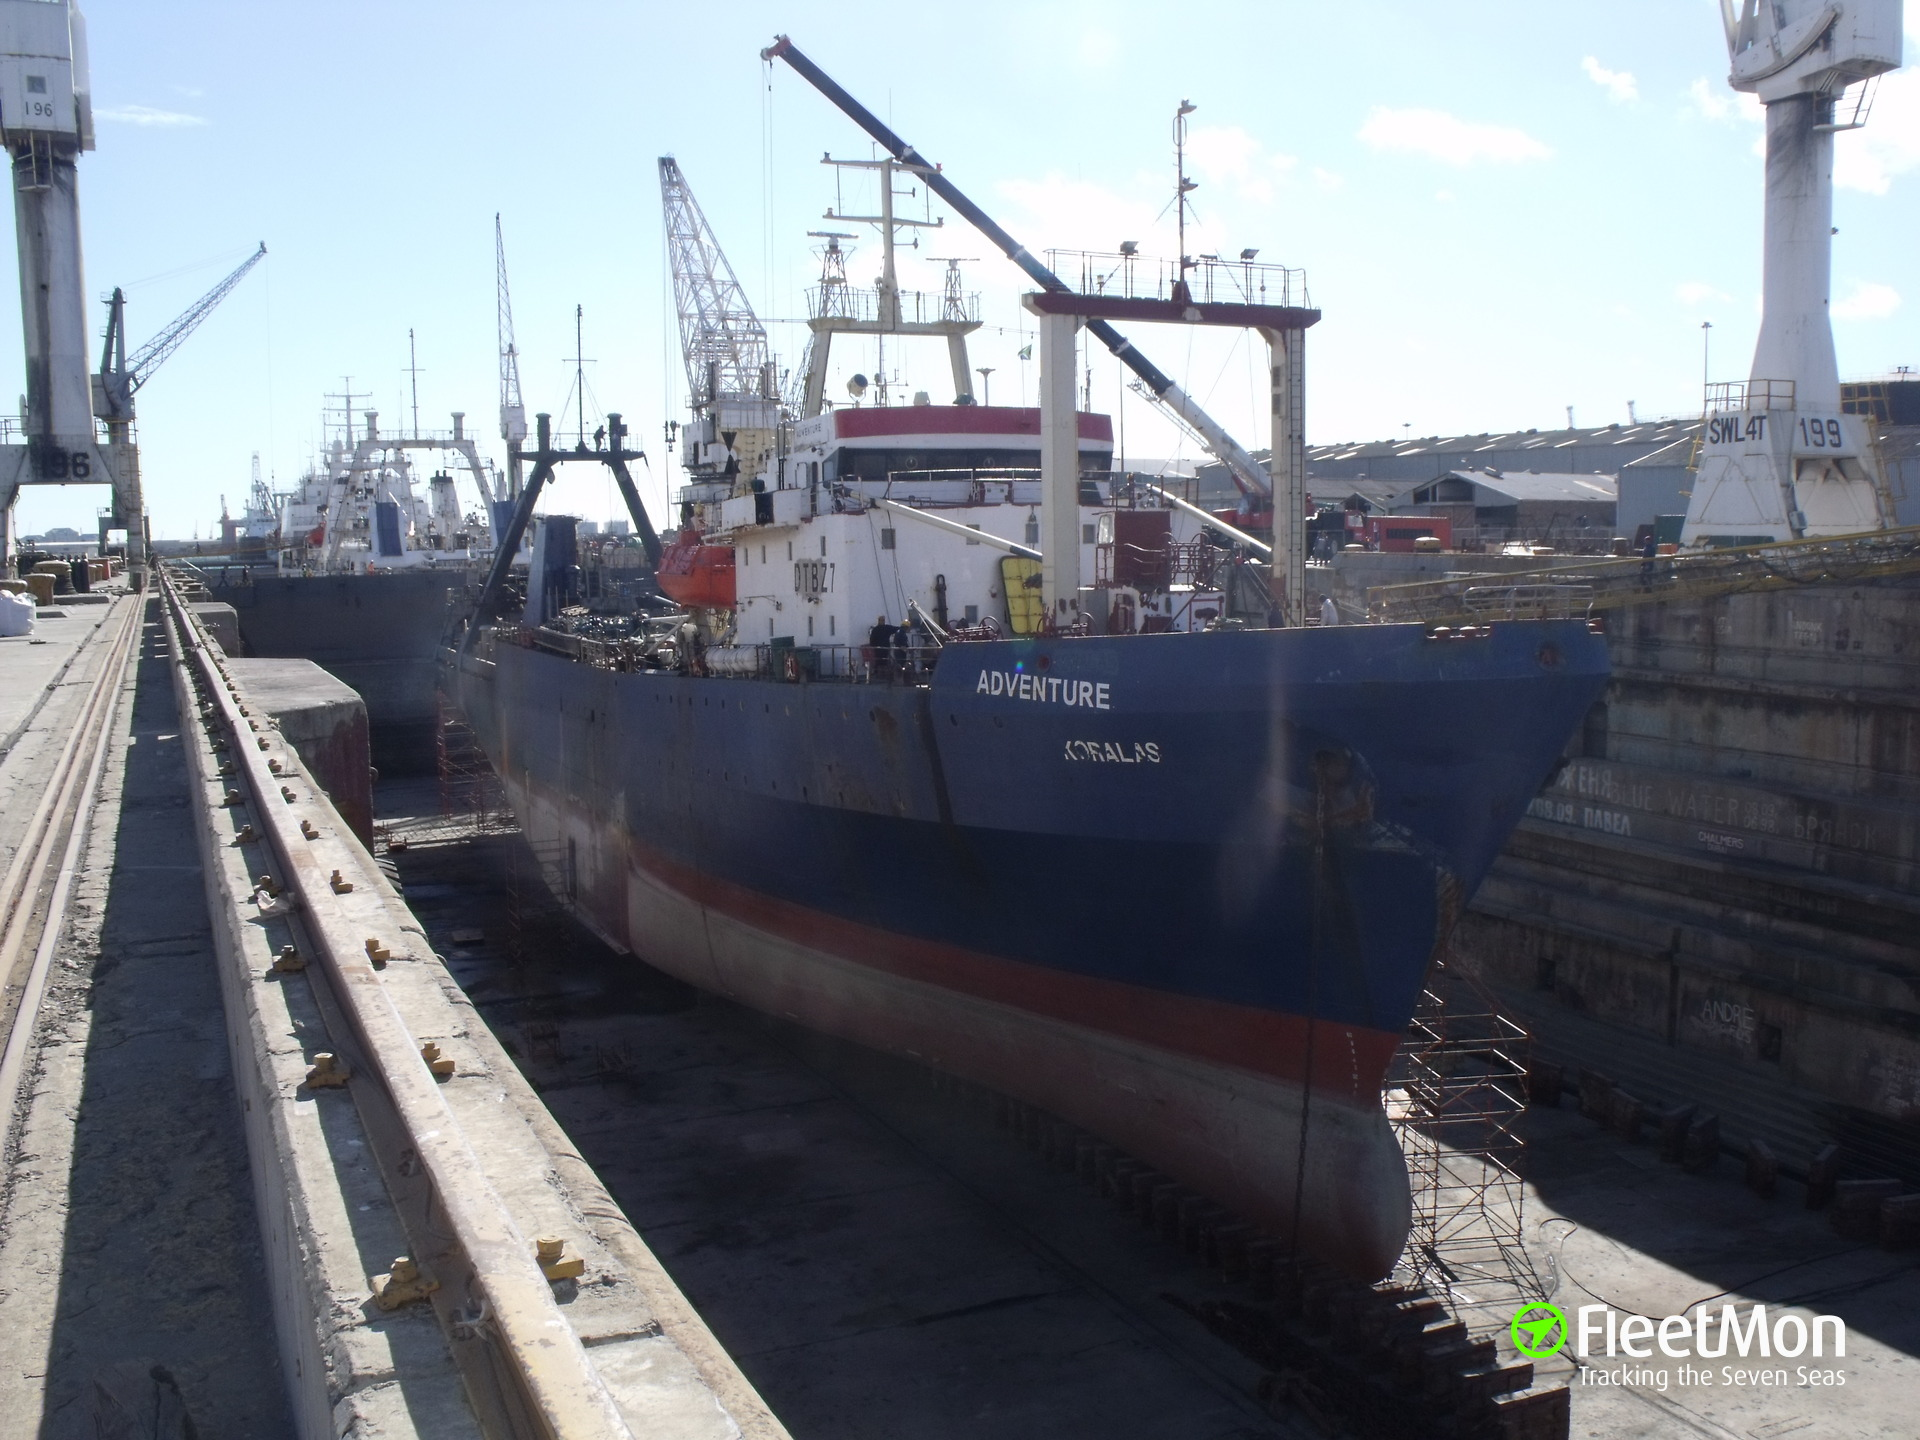 Dry dock flooded, vessels inside damaged, Cape Town